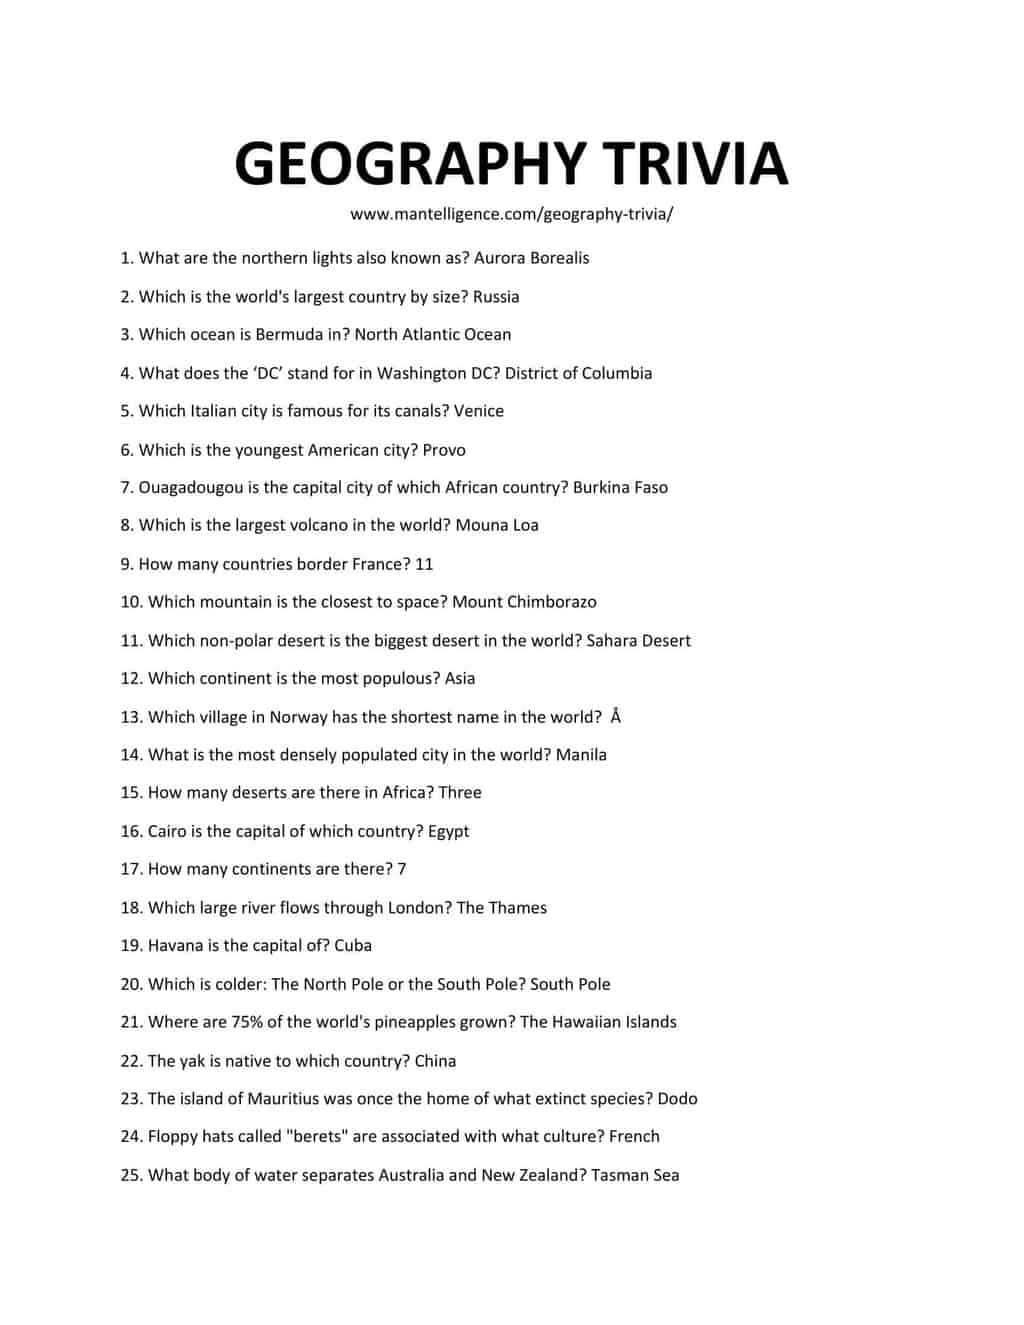 Downloadable List of Geography Trivia